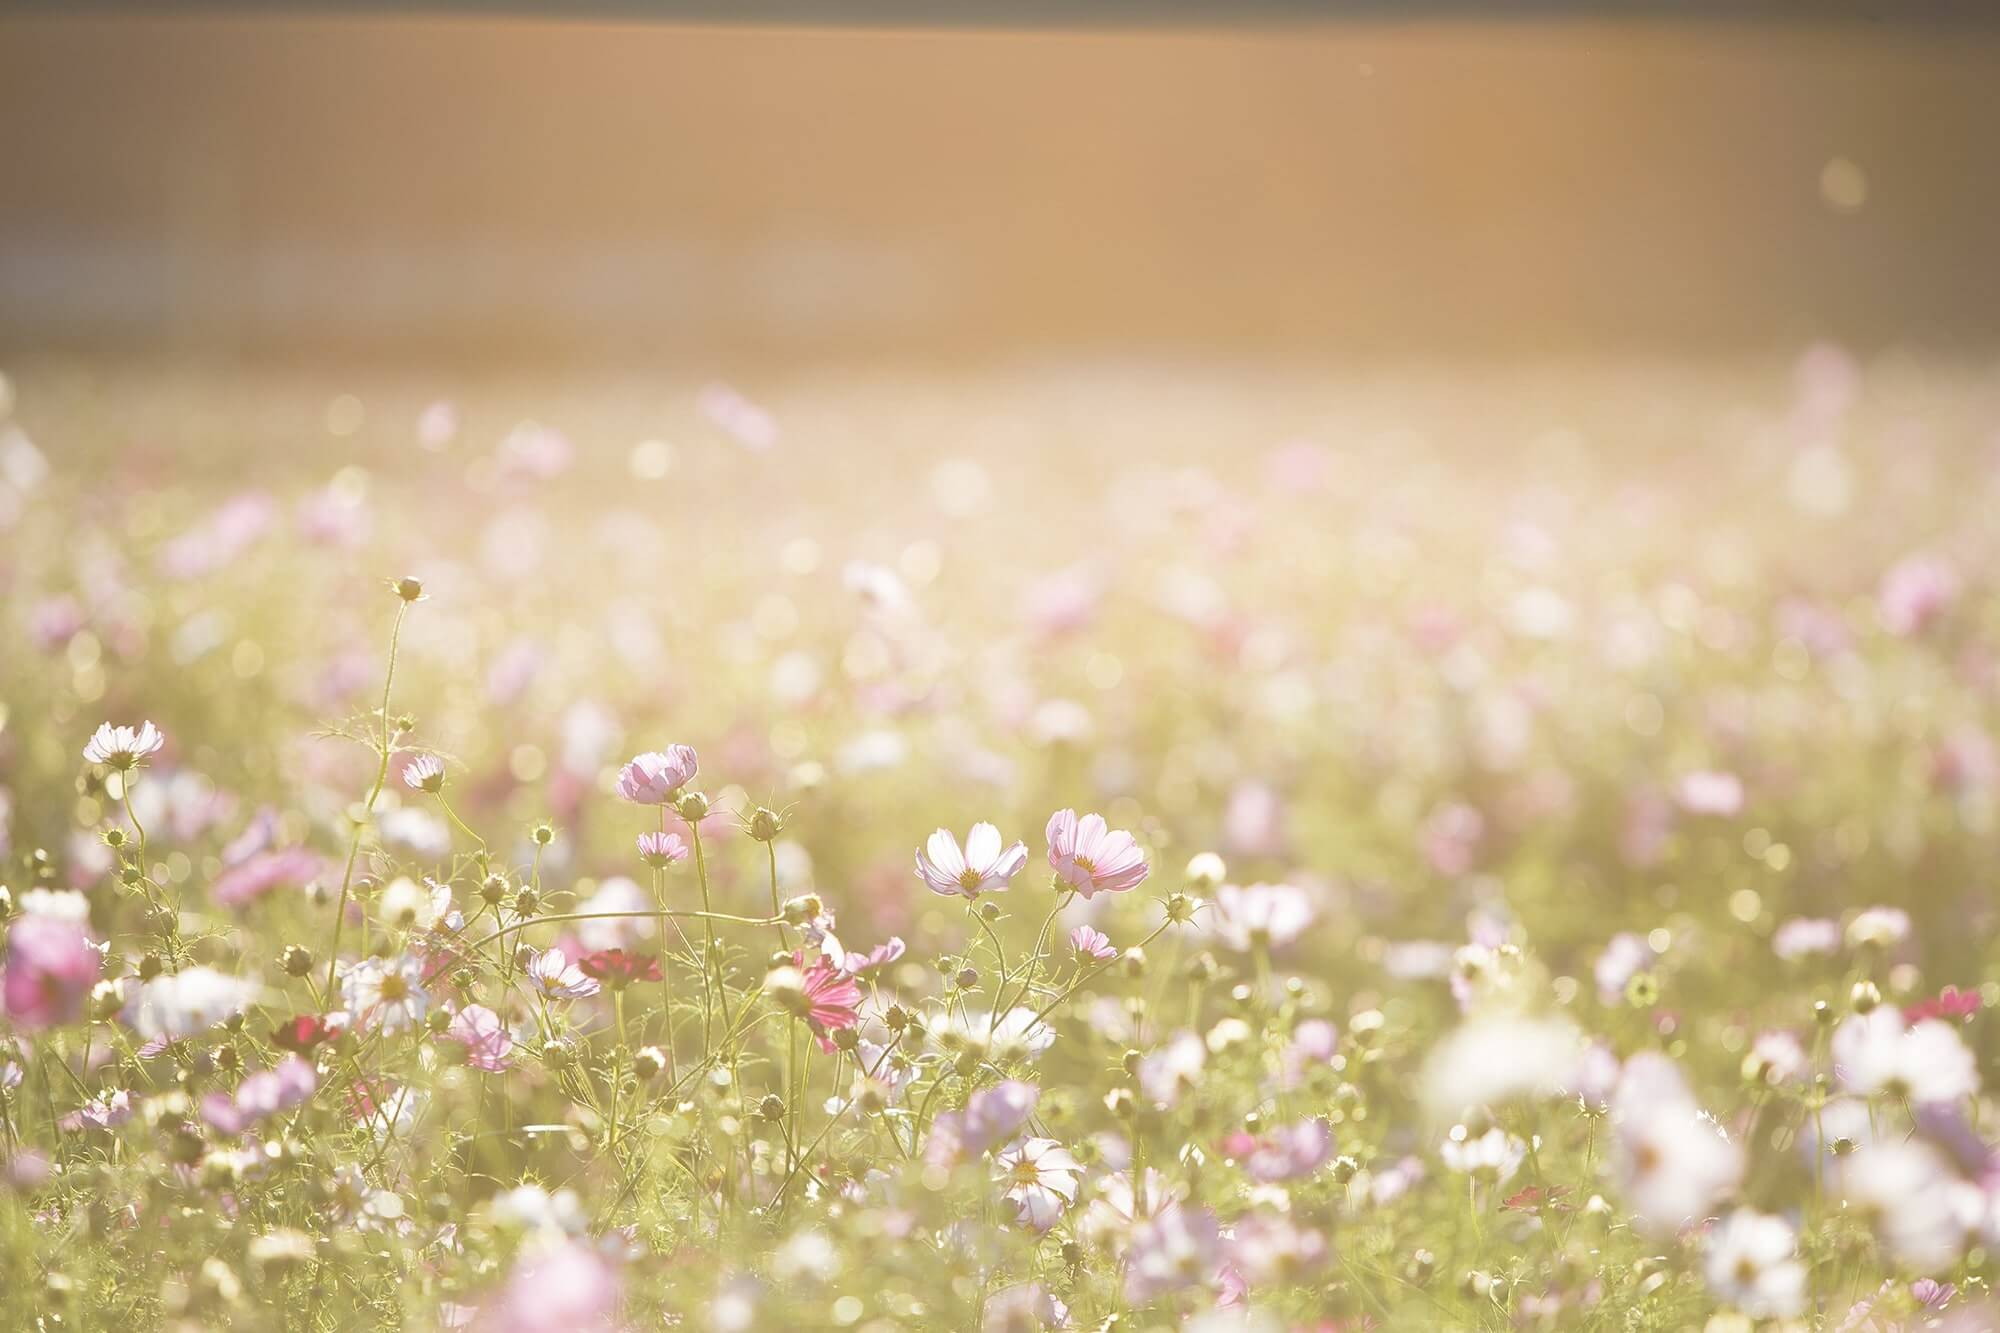 Sunlit field full of purple and white daisies